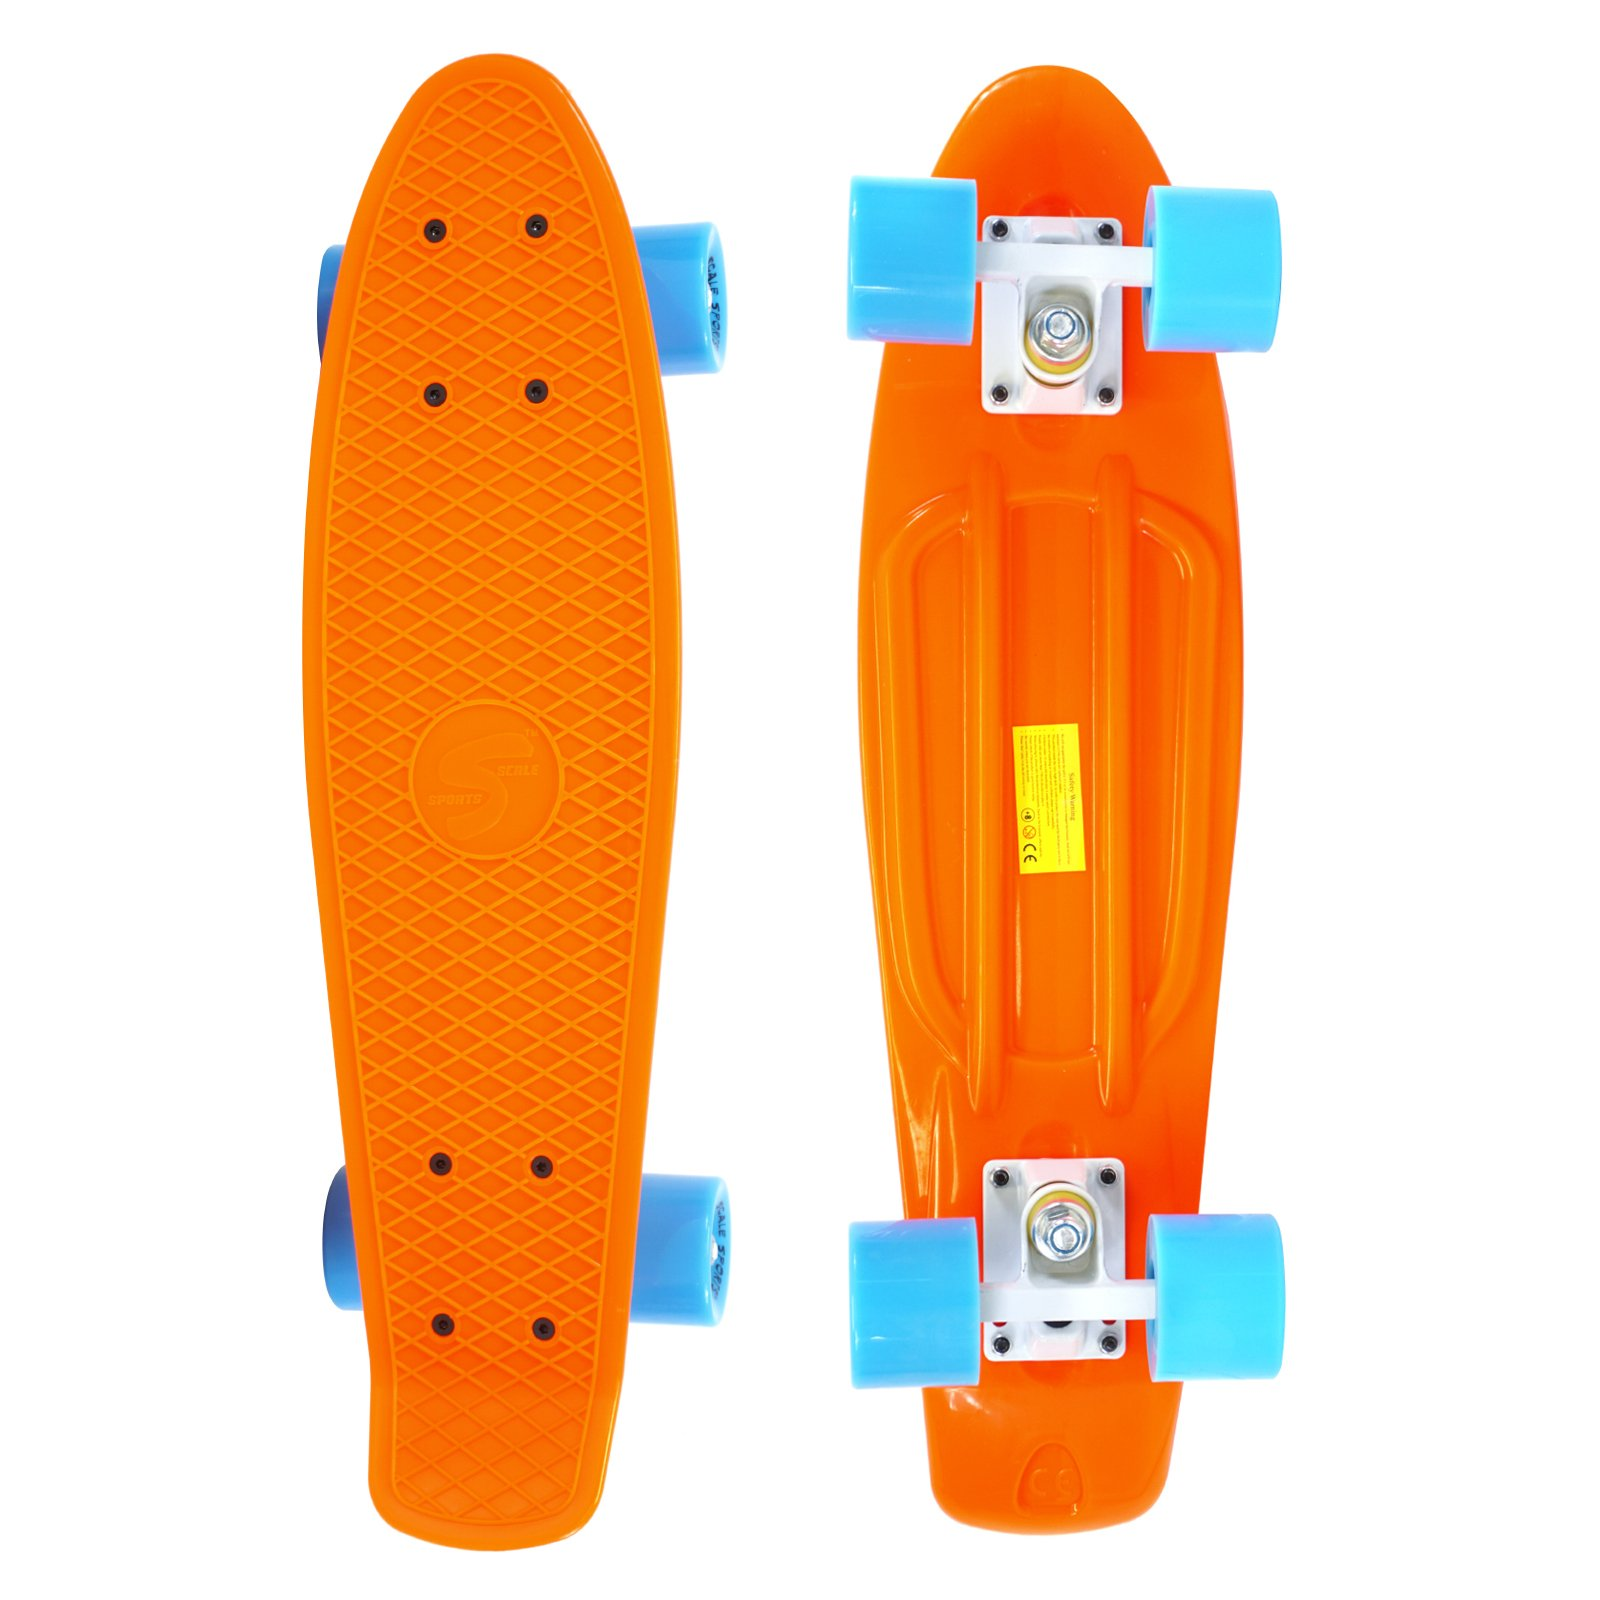 Scale Sports 22'' Skateboard Complete Pastel Street Retro Cruiser Classic Plastic Deck Orange